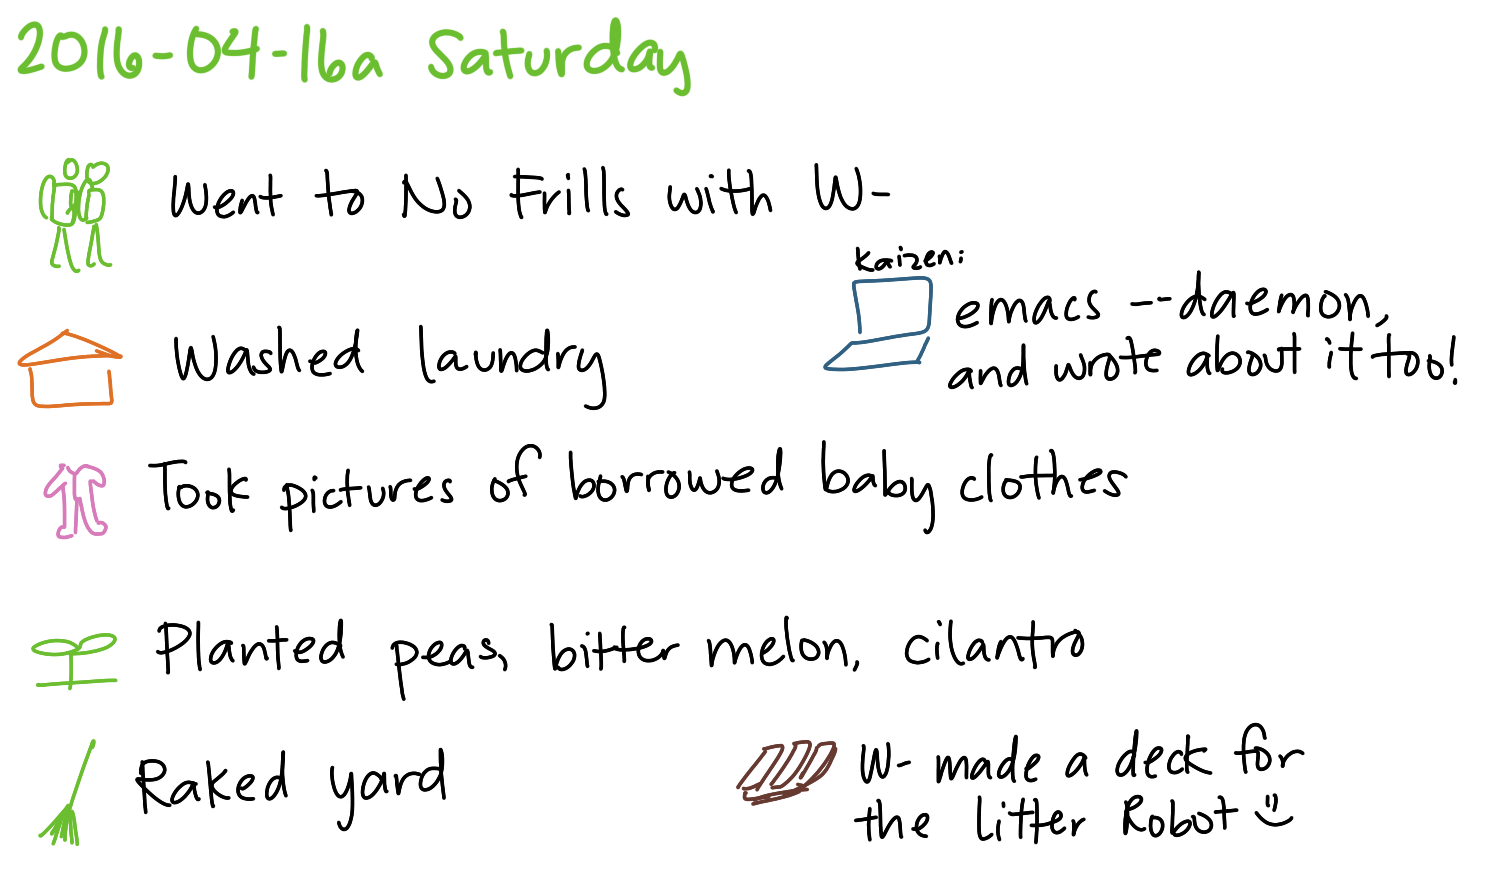 2016-04-16a Saturday -- index card #journal.png